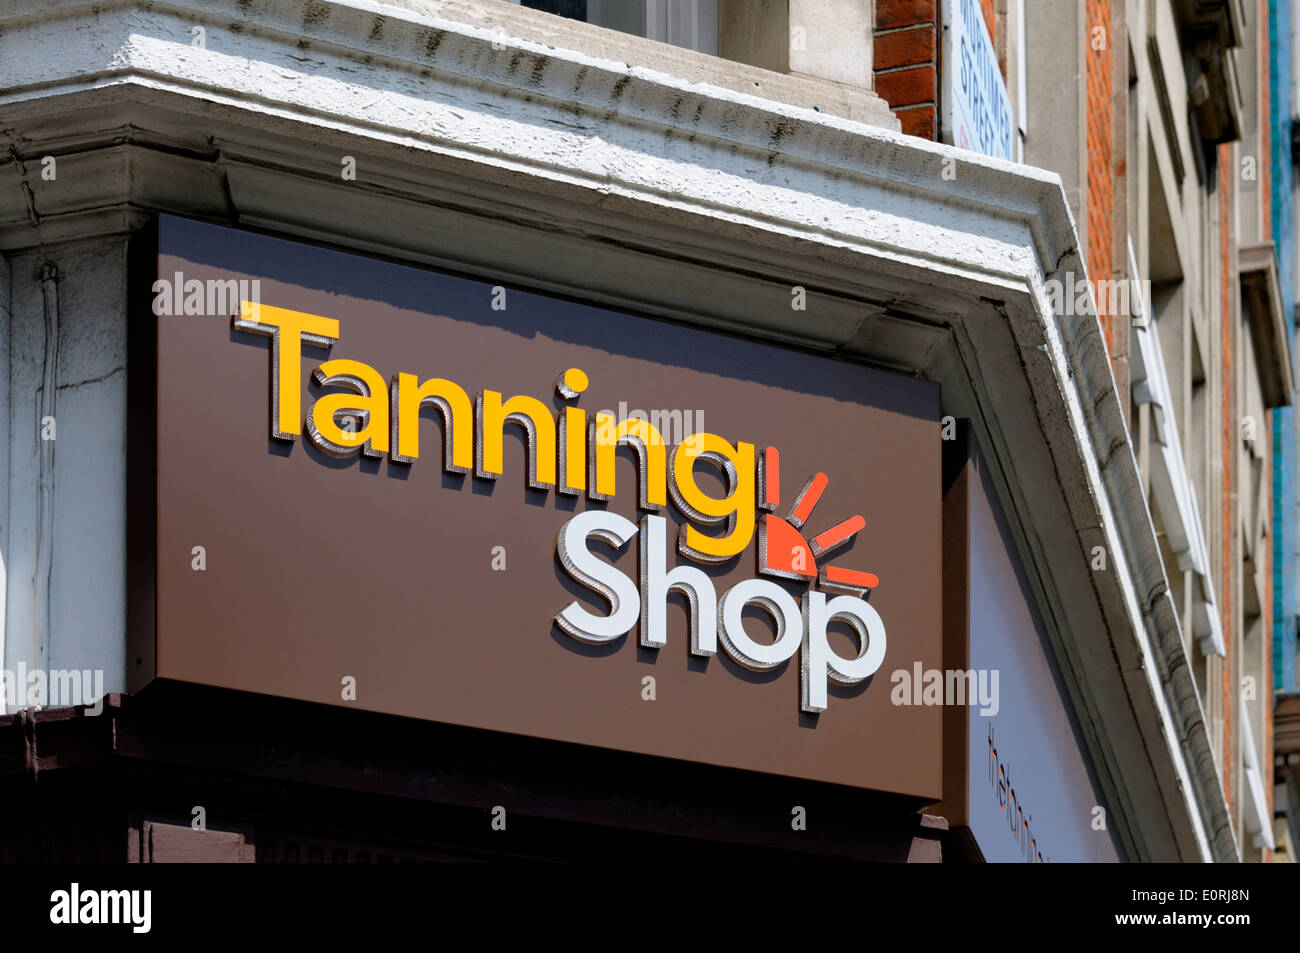 London, England, UK. Tanning Shop frontage - Stock Image